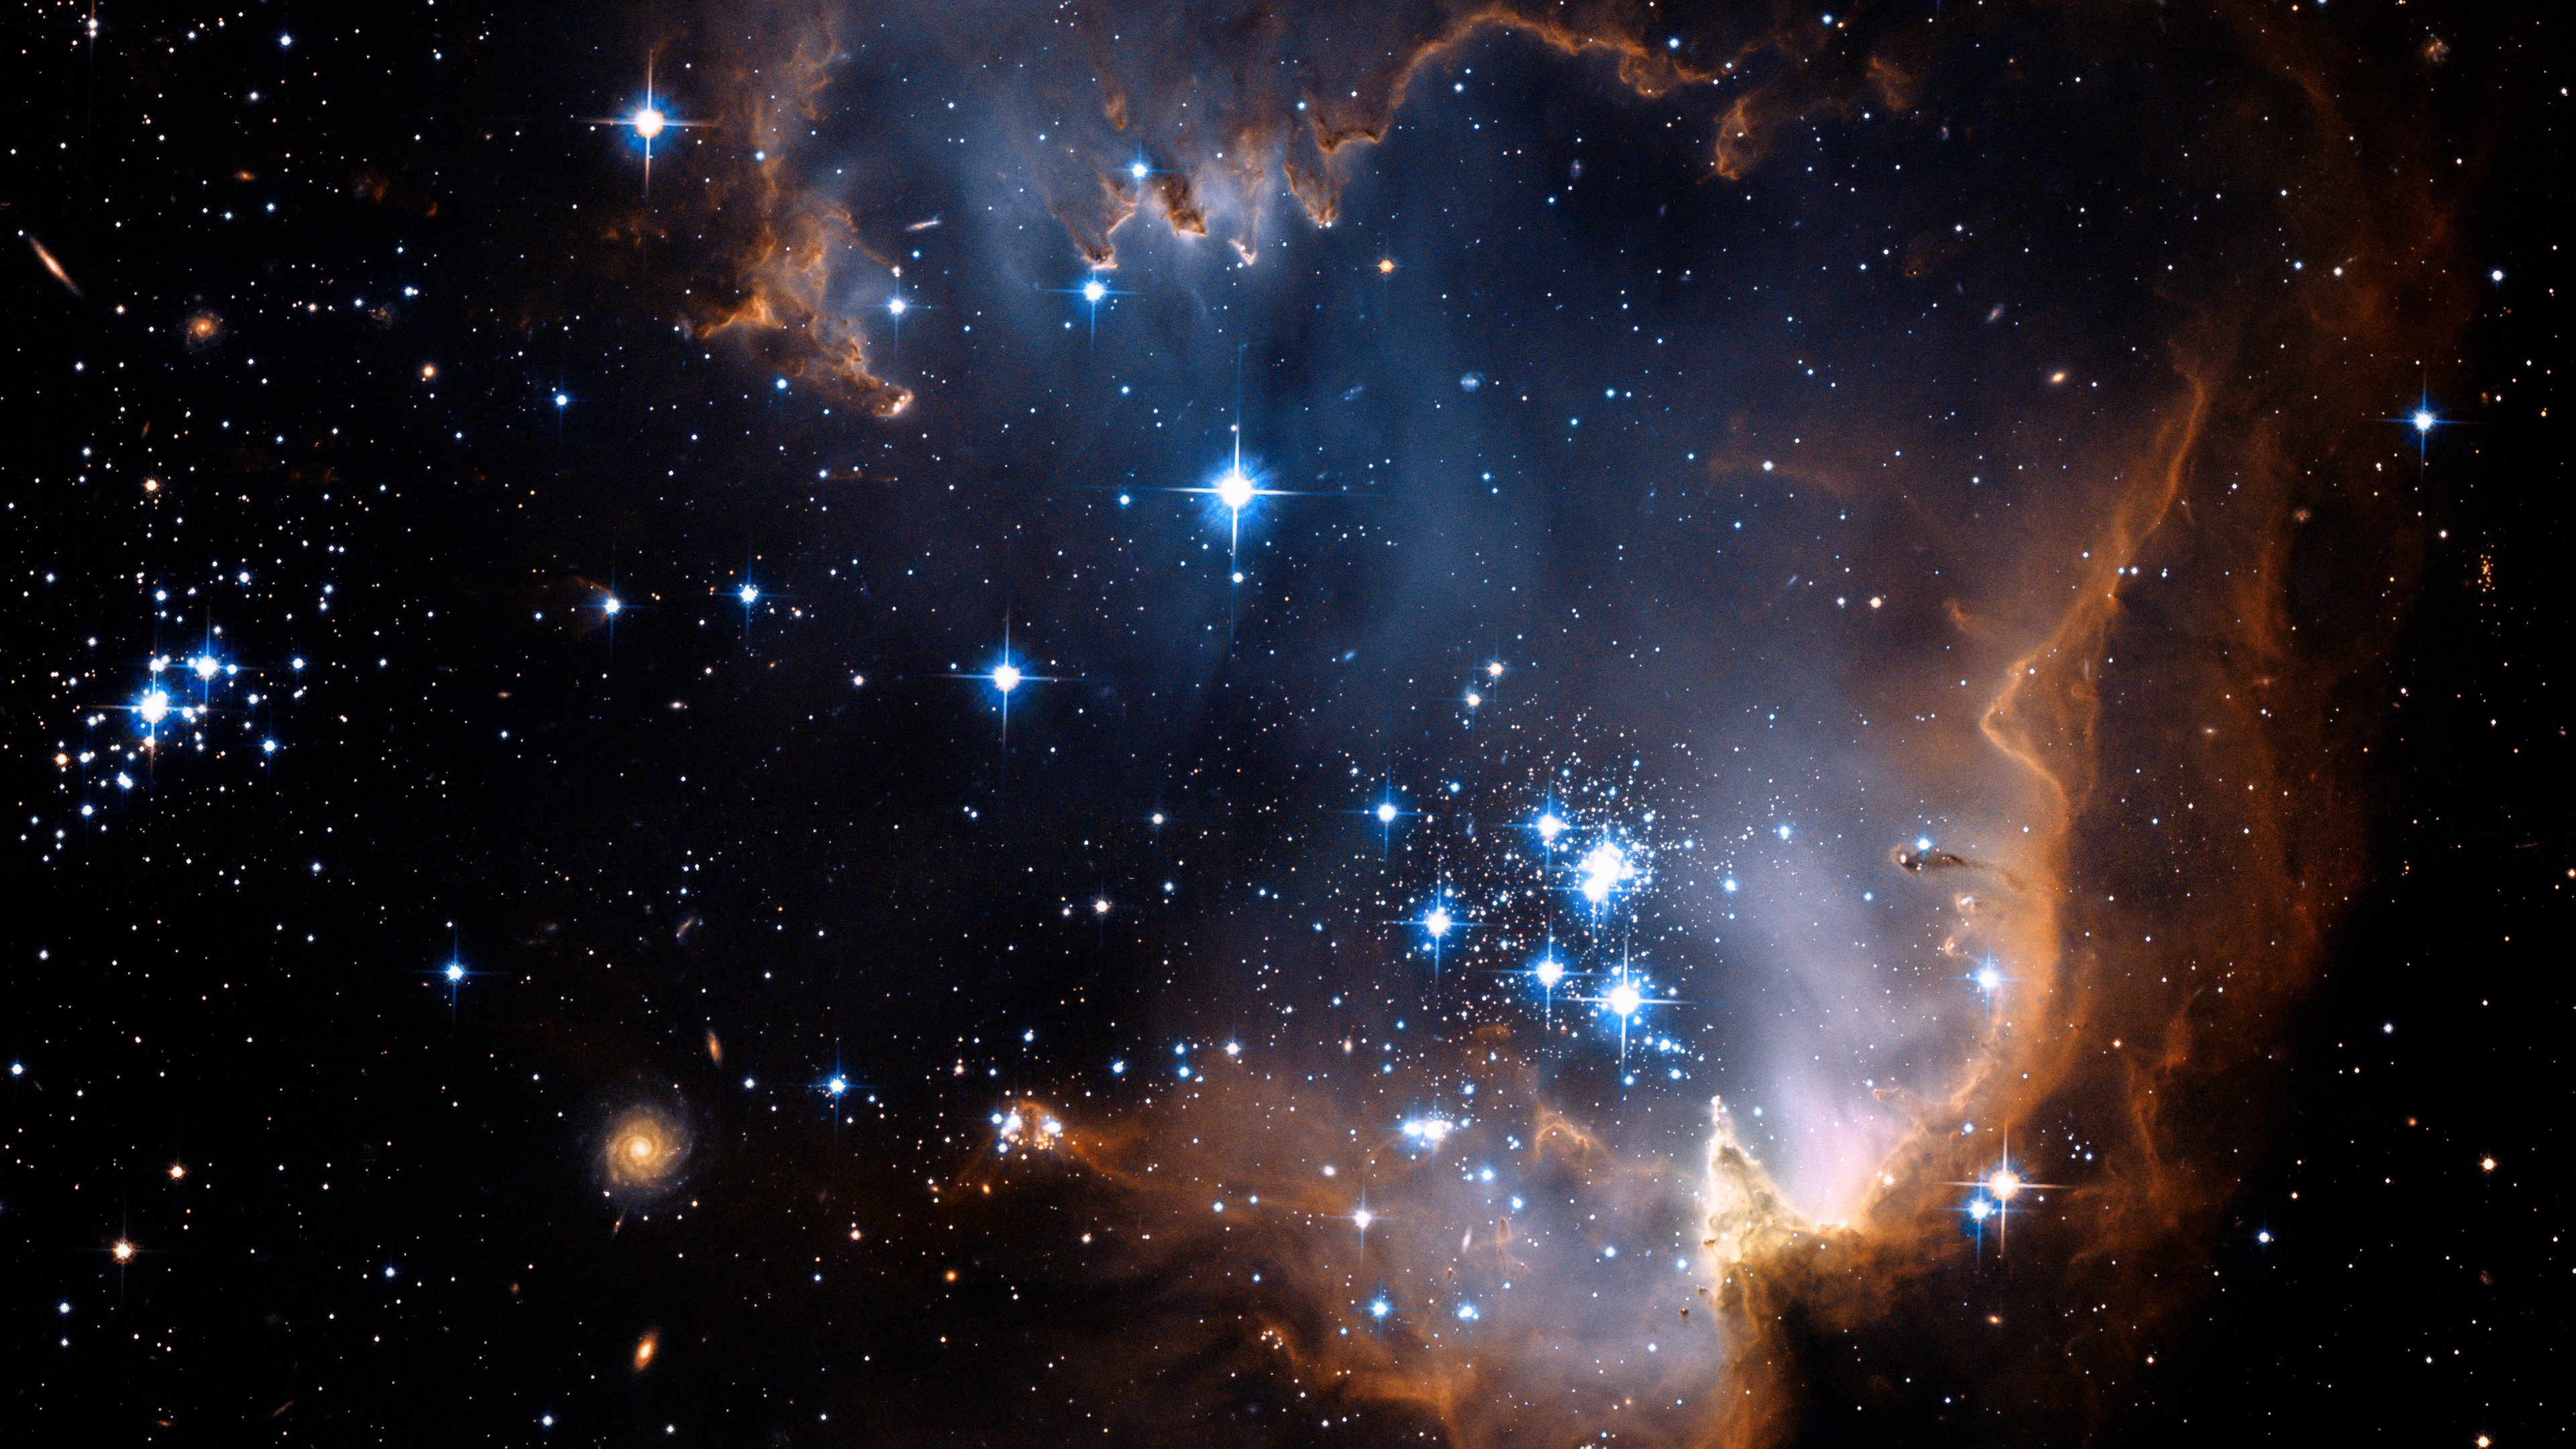 4k Deep Space Wallpapers - Beautiful Background Of Stars , HD Wallpaper & Backgrounds